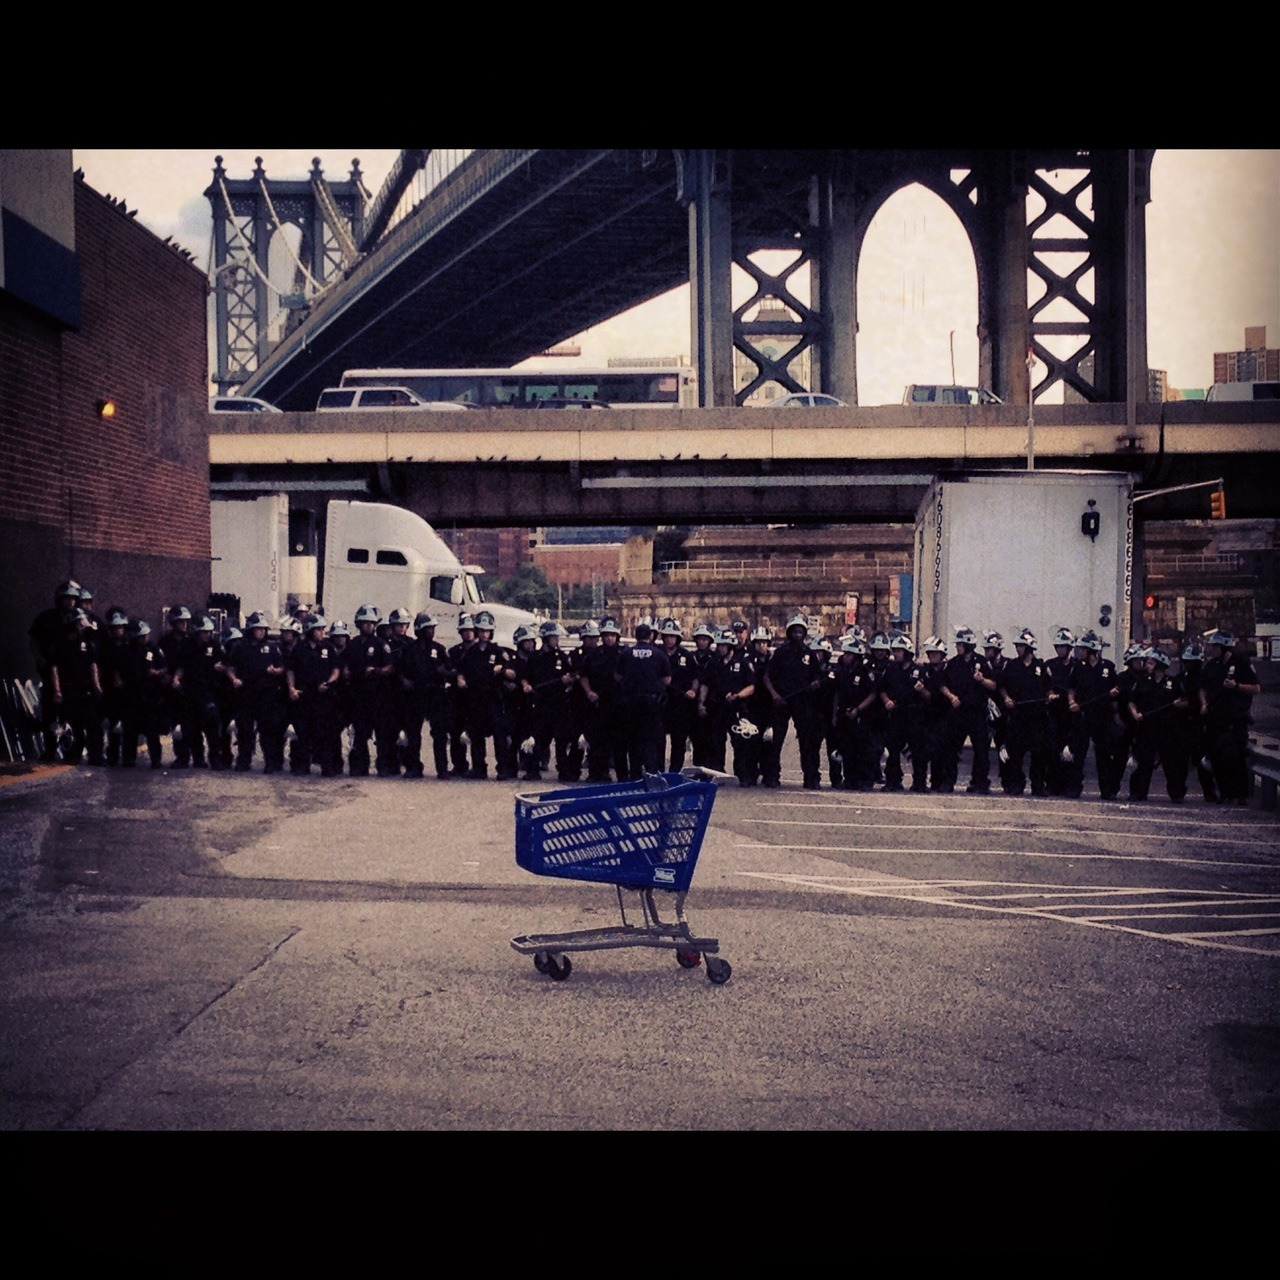 NYPD vs Shopping Cart / Pathmark / 227 Cherry St / Two Bridges, NYC / 09.05.12 / 5:55PM